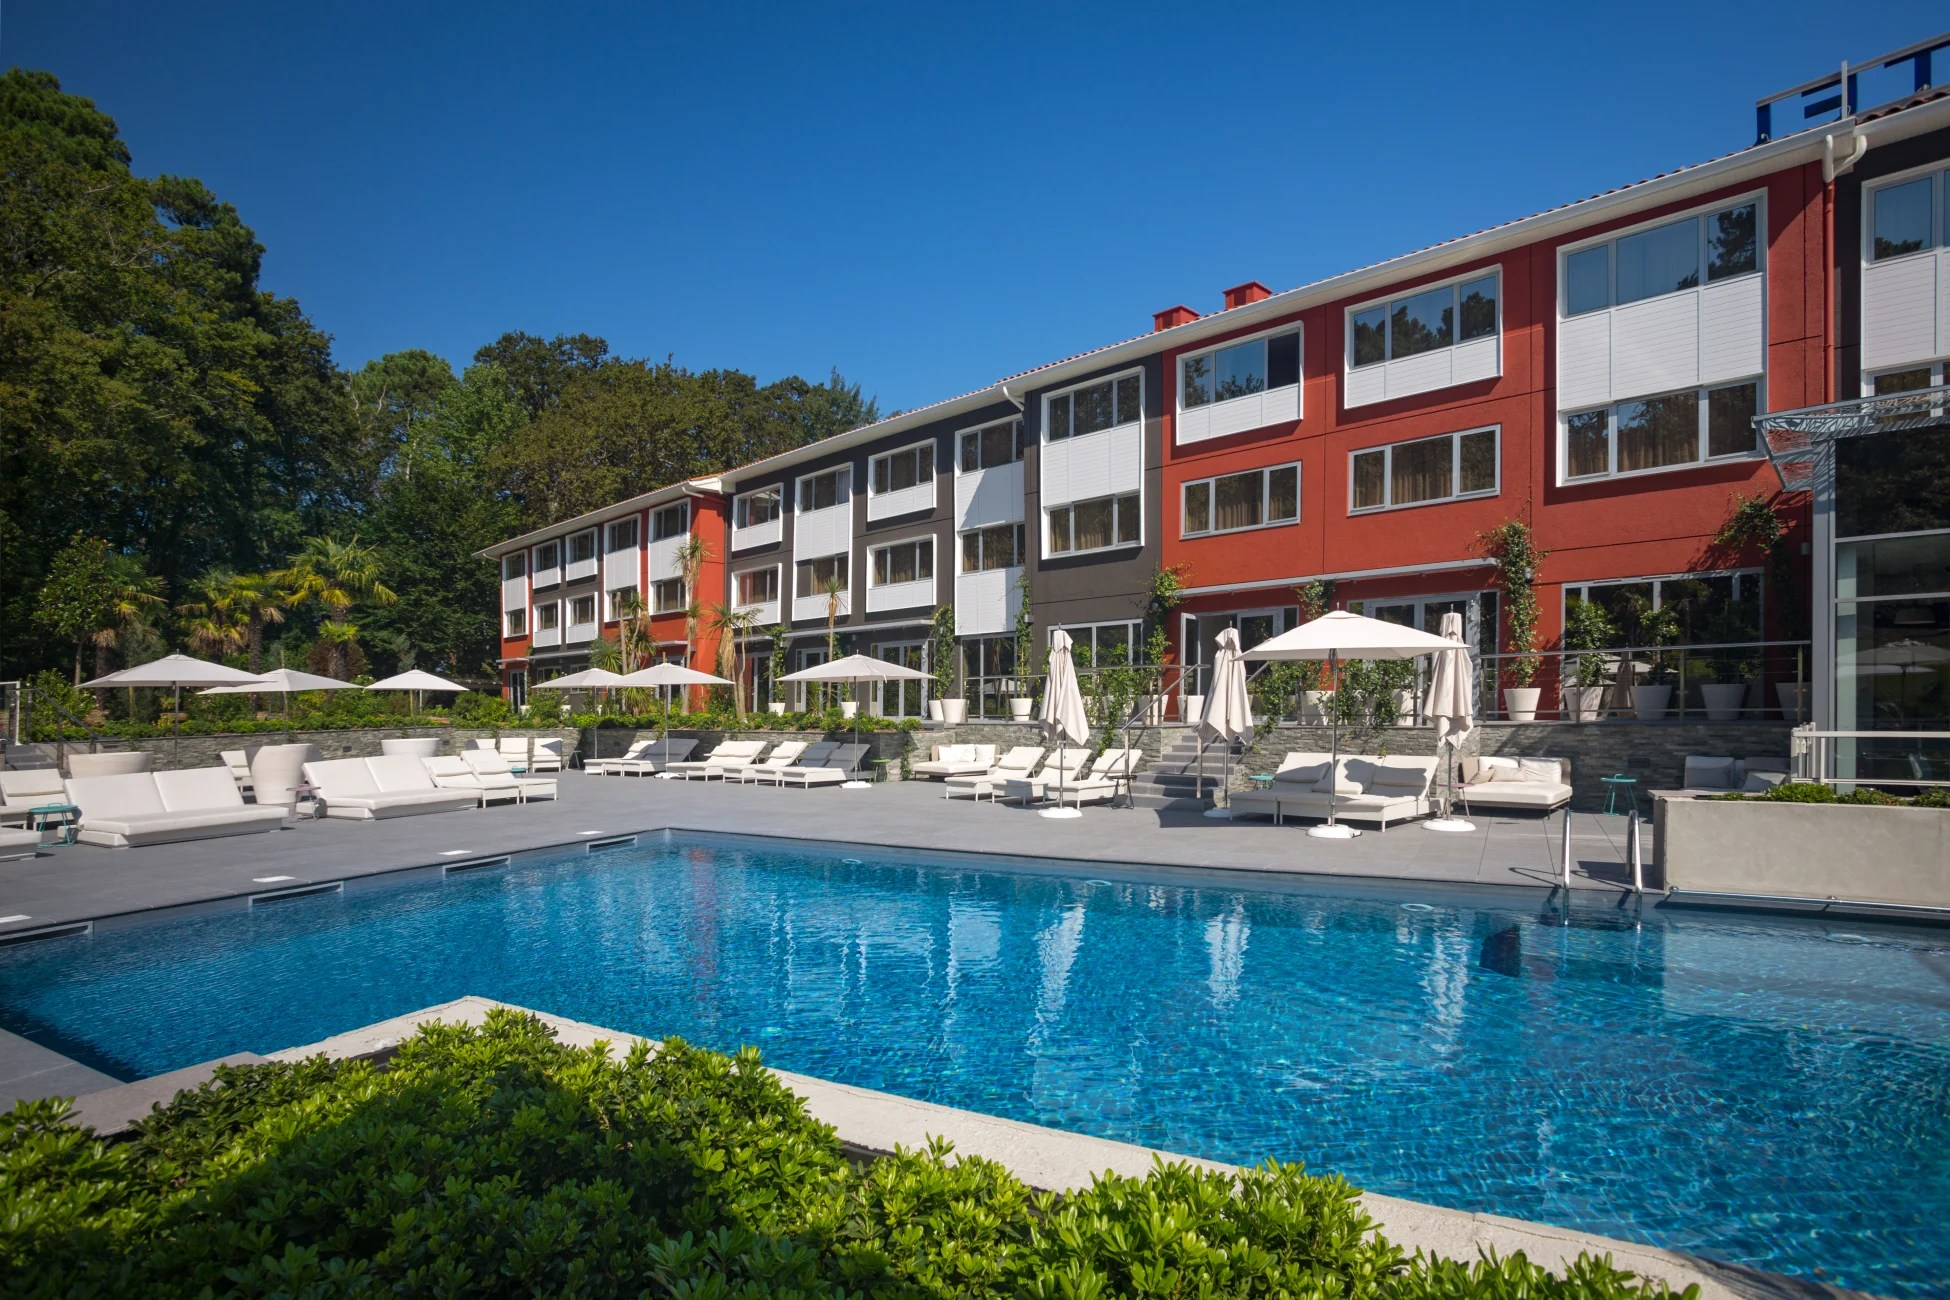 Pierre Et Vacances Anglet Hotel Hotel Novotel Resort Spa Biarritz Anglet Anglet Trivago Ca